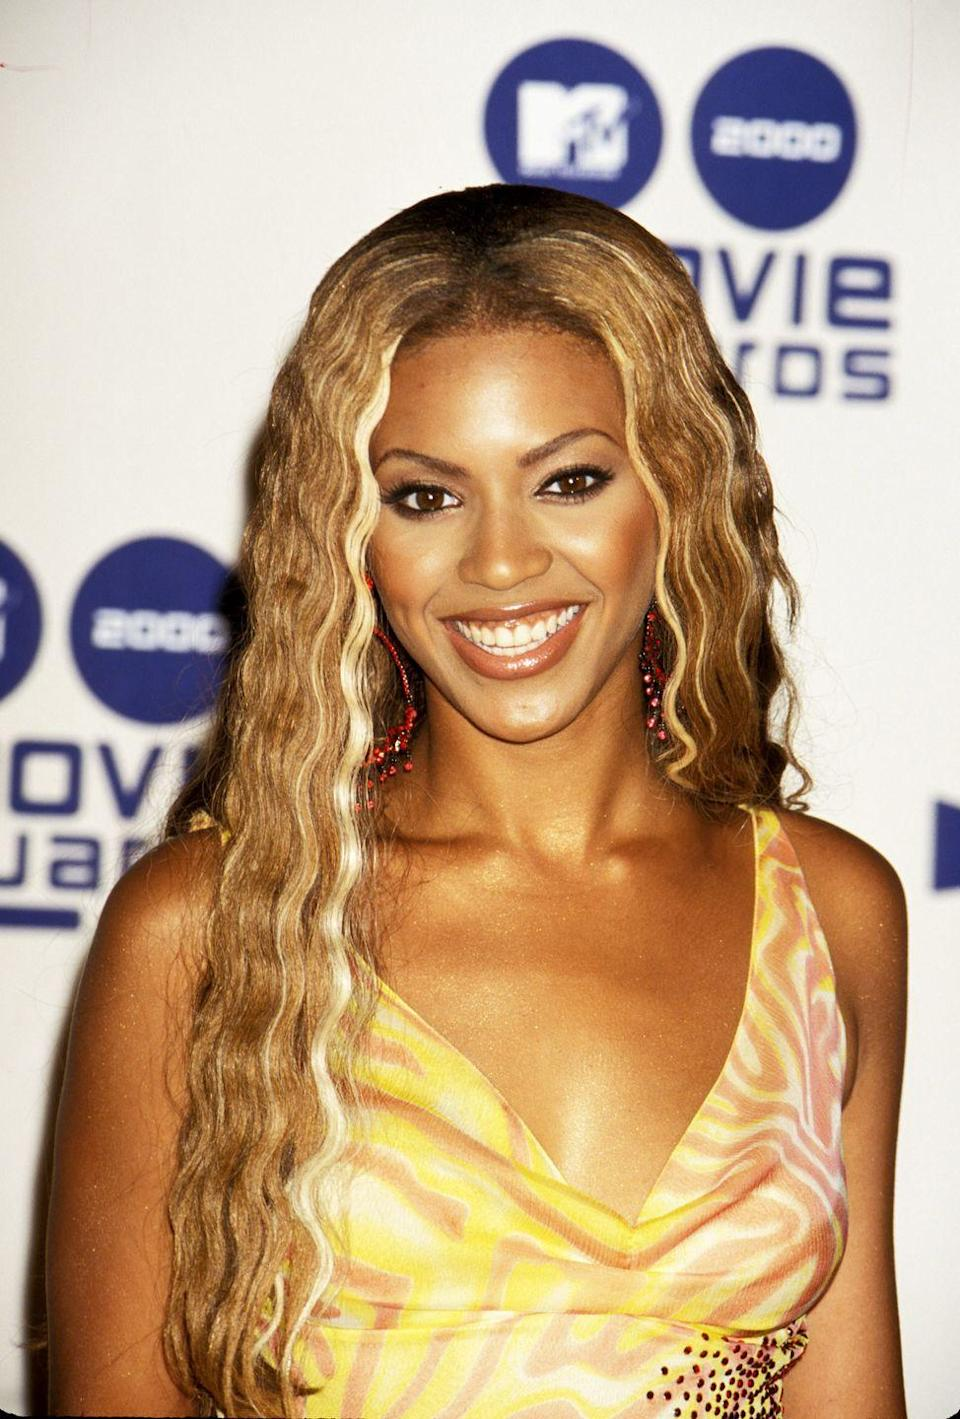 <p>The 2000s started to see more wearable colors and cuts. Case in point: Beyonce's wavy, honey blonde hair.</p>